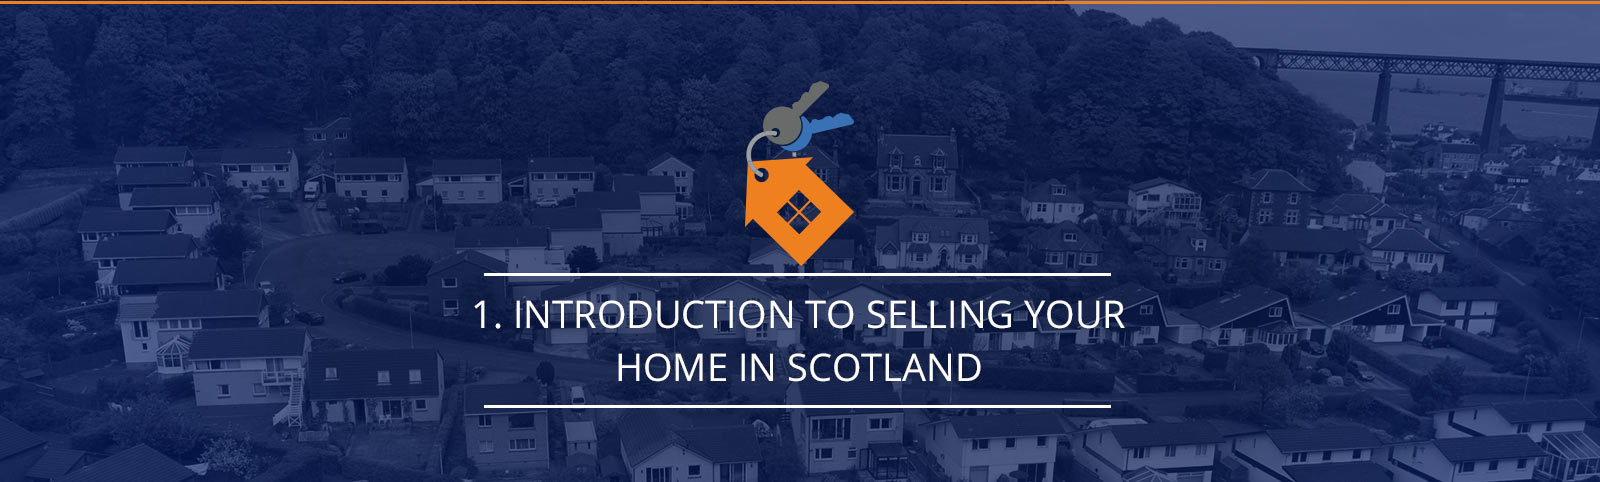 Introduction to selling your home in Scotland